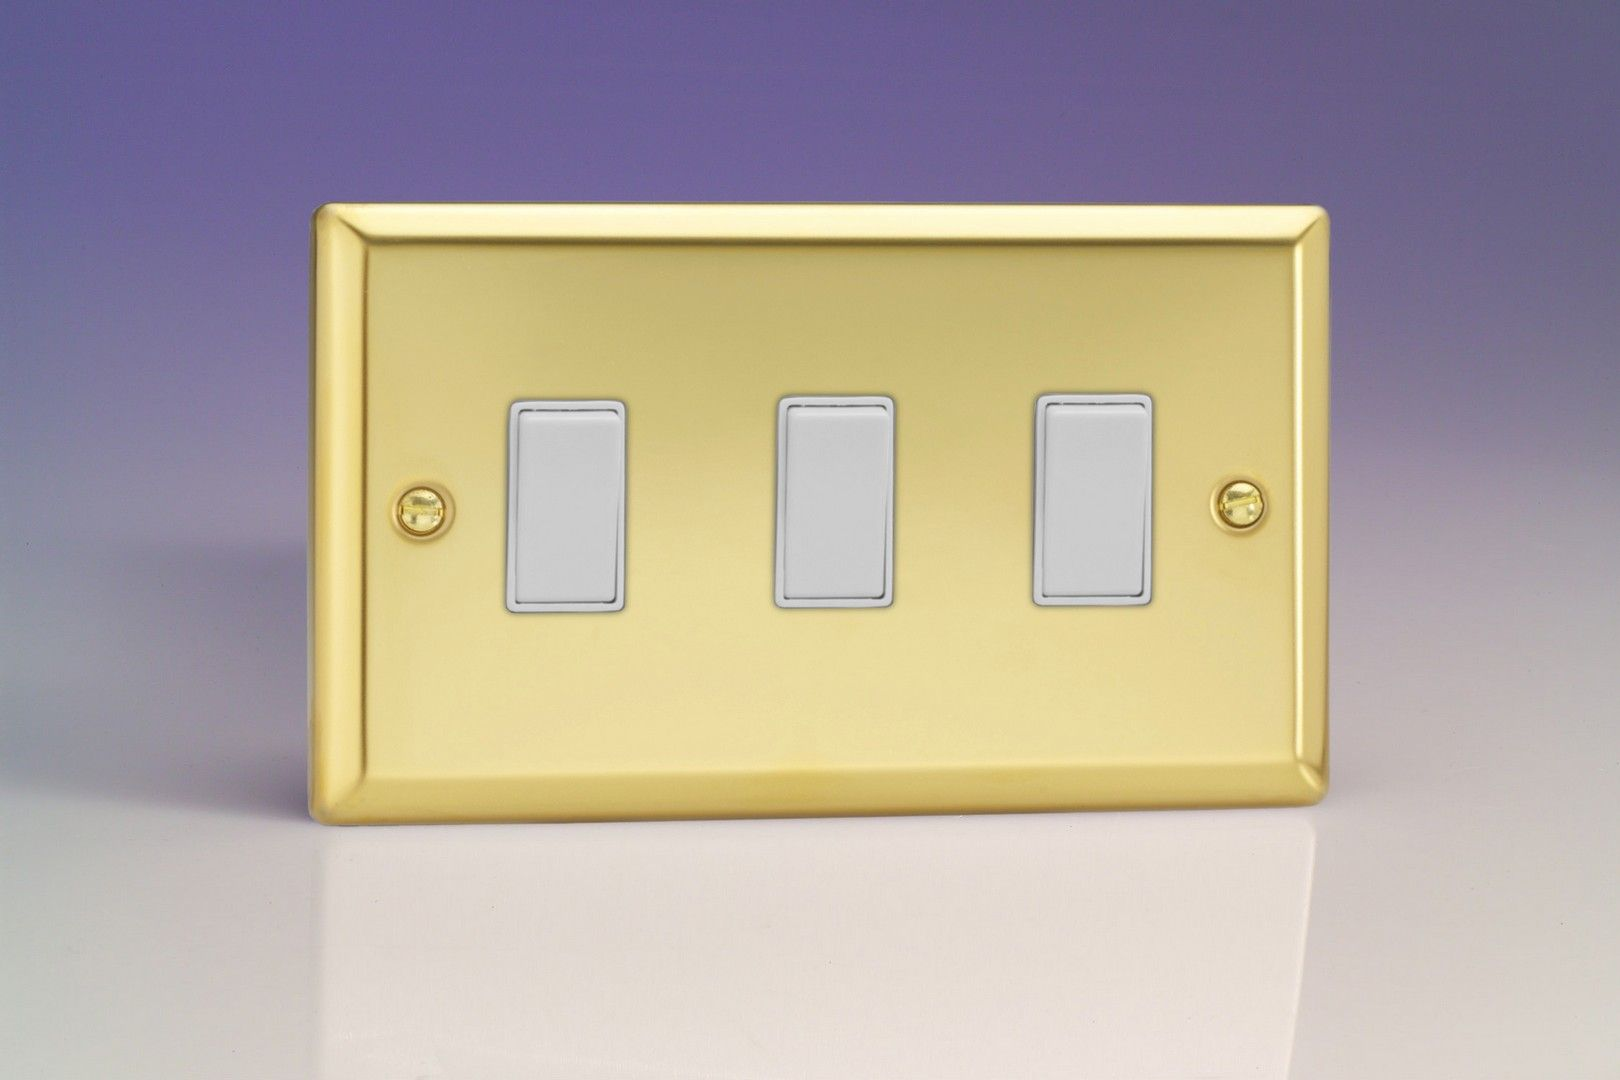 Varilight 3 Gang 10a 1 Or 2 Way Rocker Switch Twin Plate Victorian Light Brass White Insert Xv93w